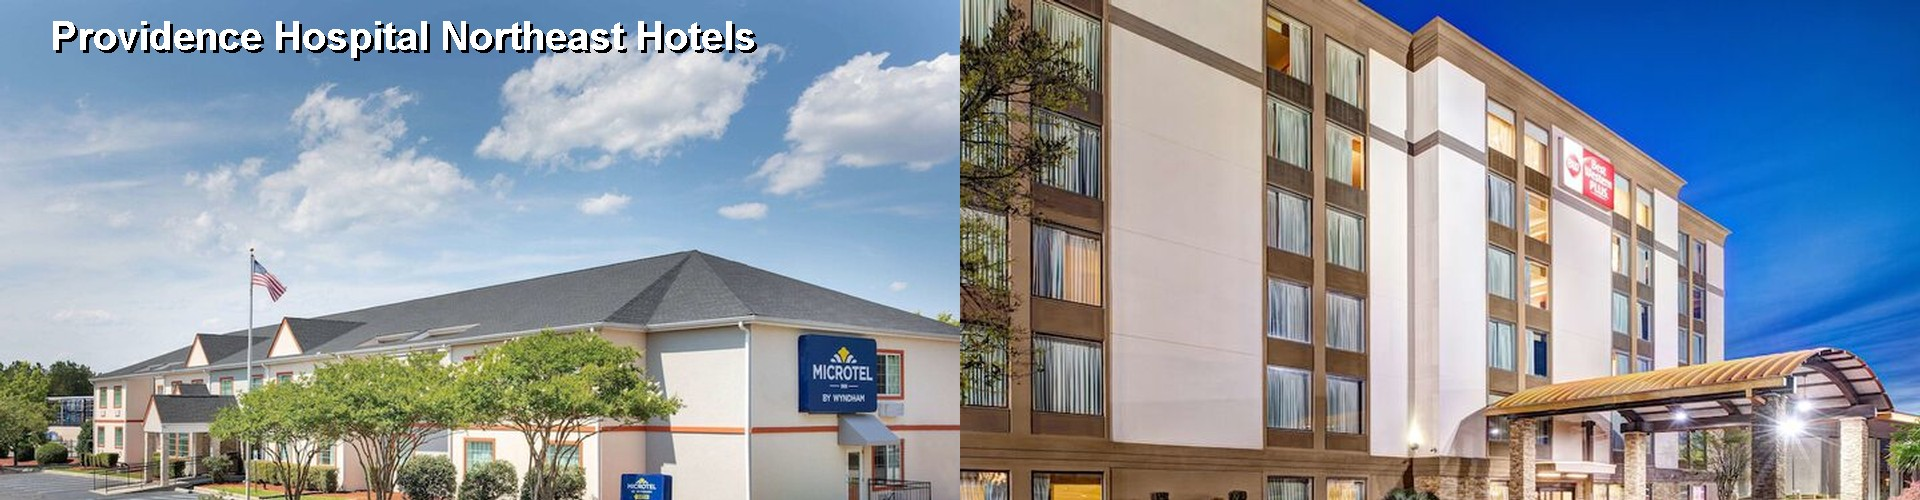 5 Best Hotels near Providence Hospital Northeast